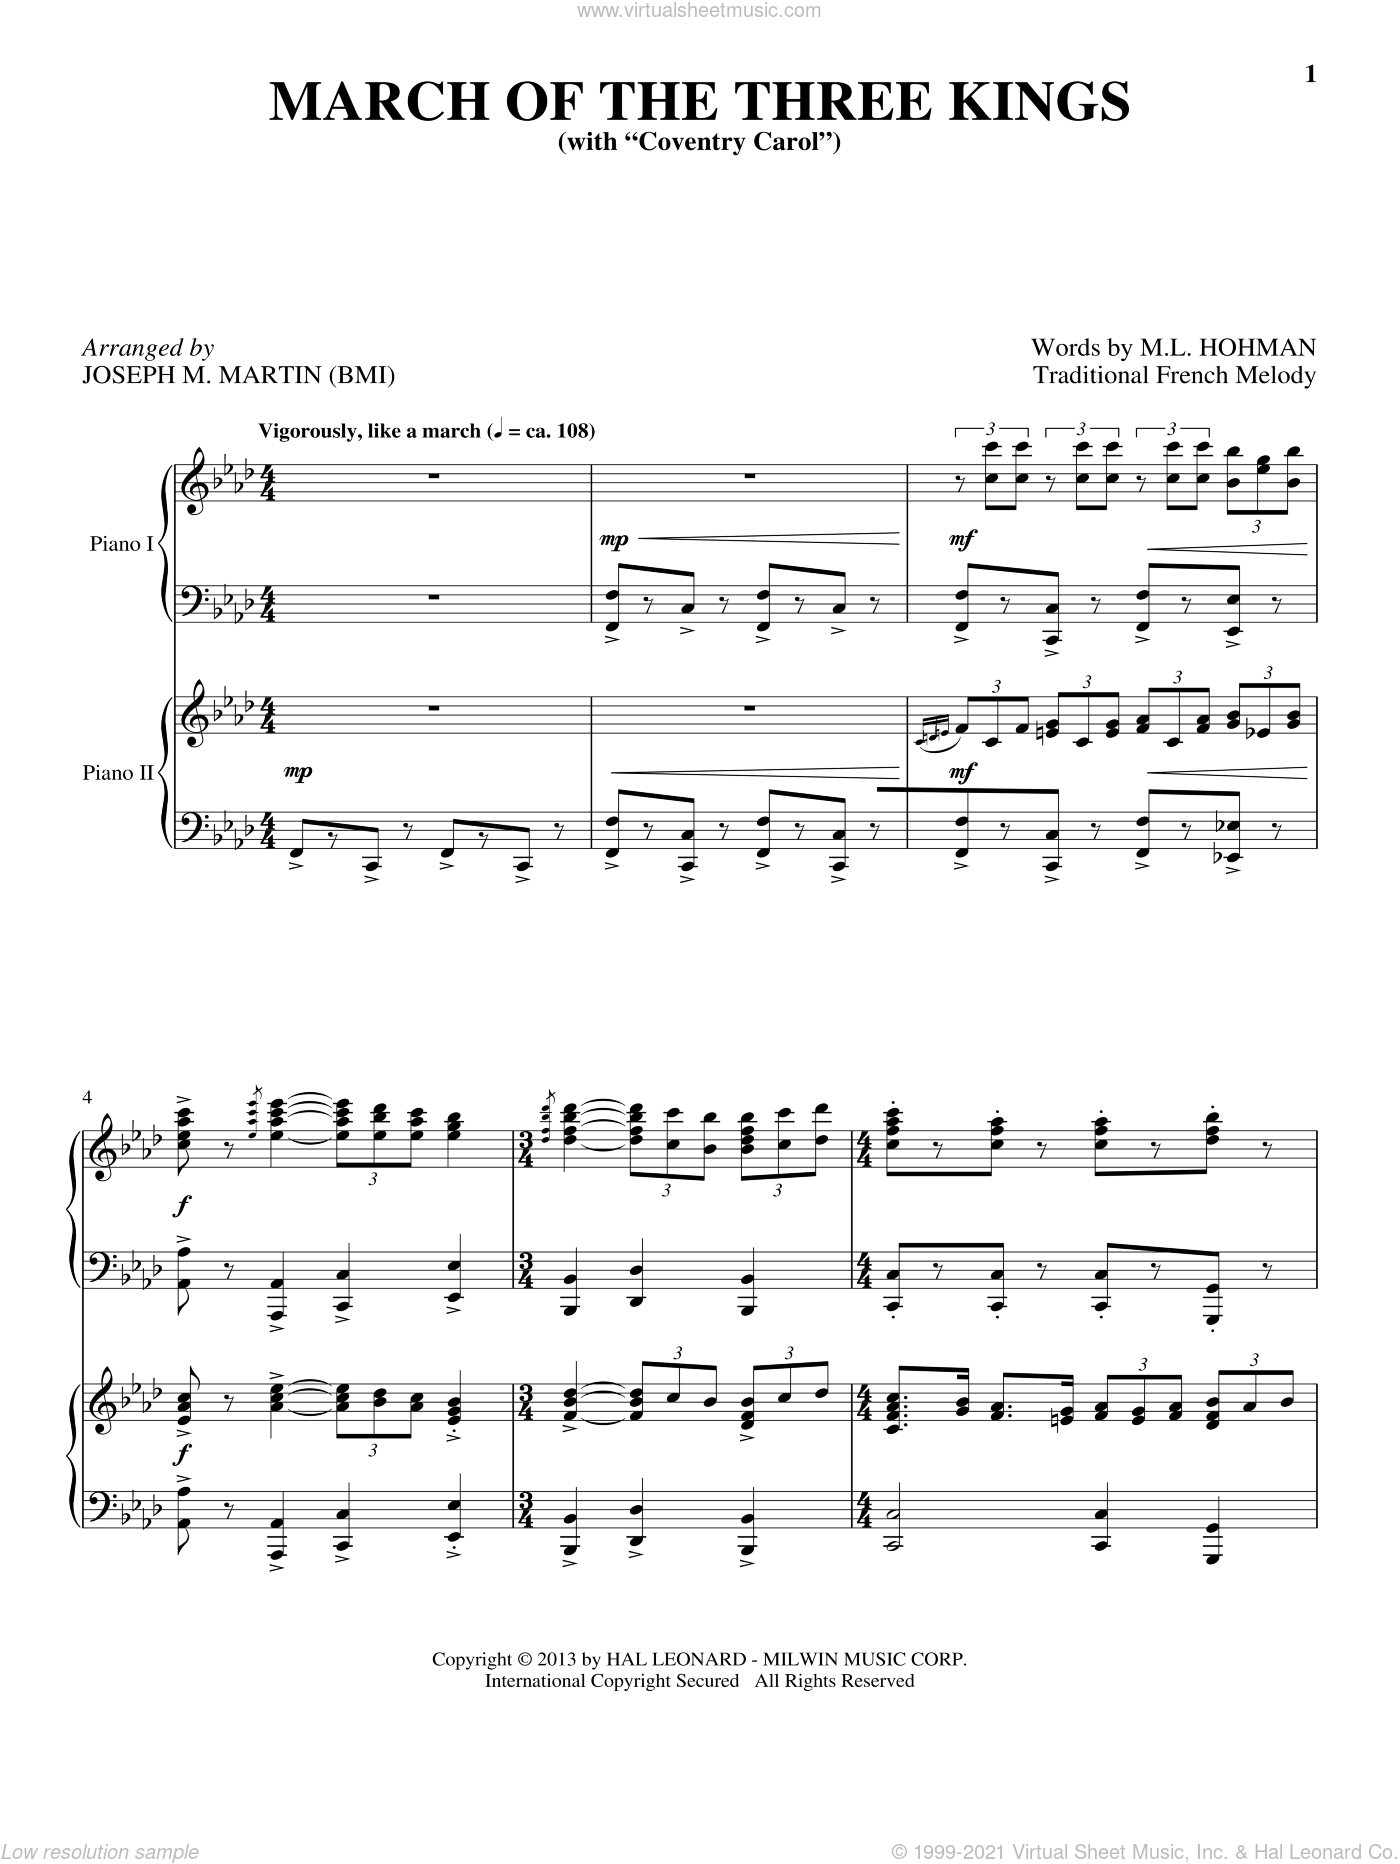 March Of The Three Kings sheet music for piano four hands (duets) by Joseph M. Martin